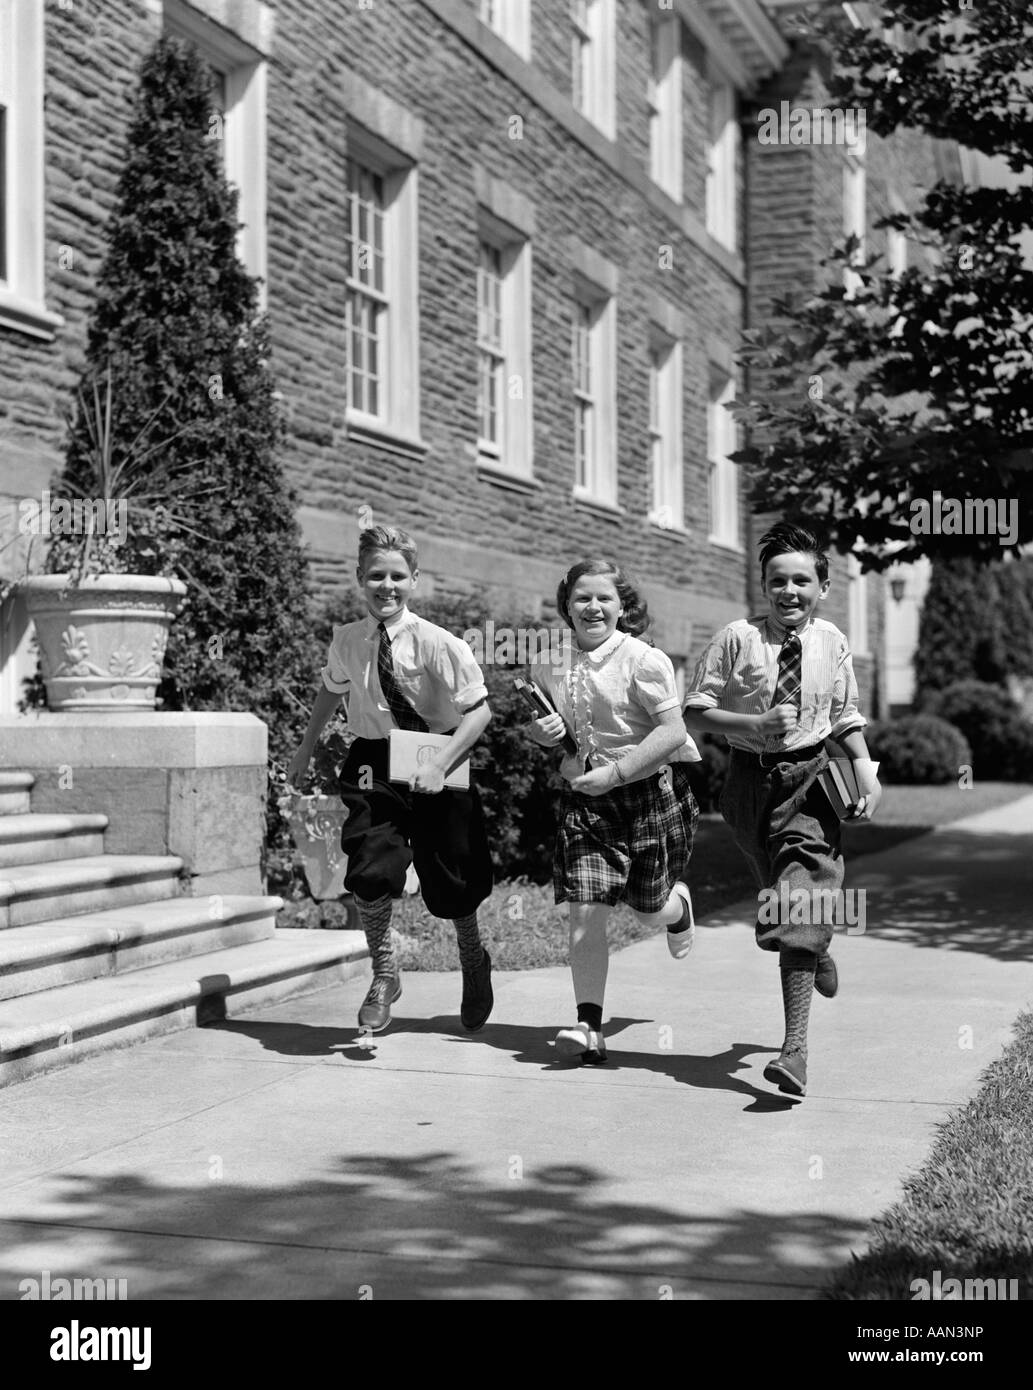 1940s GROUP OF THREE SCHOOL CHILDREN 2 BOYS 1 GIRL RUNNING ...